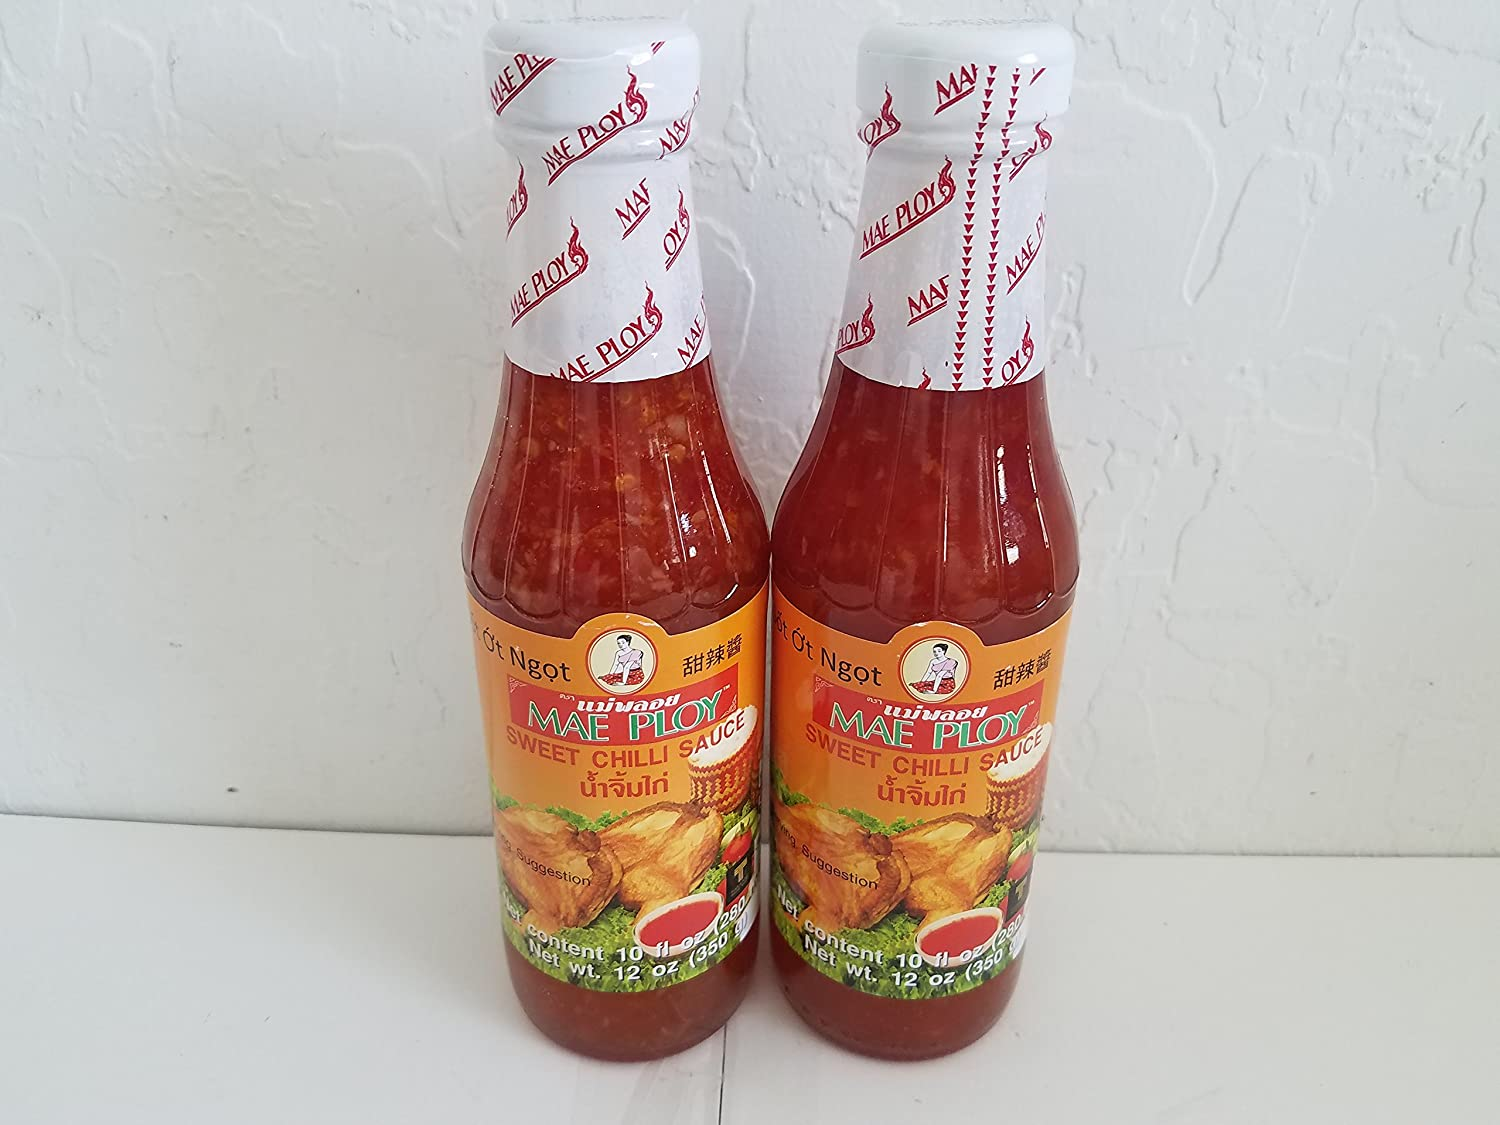 Mae Ploy Sweet Chili Sauce Bottle 12 Ounce Pack Of 2 Walmart Com Walmart Com